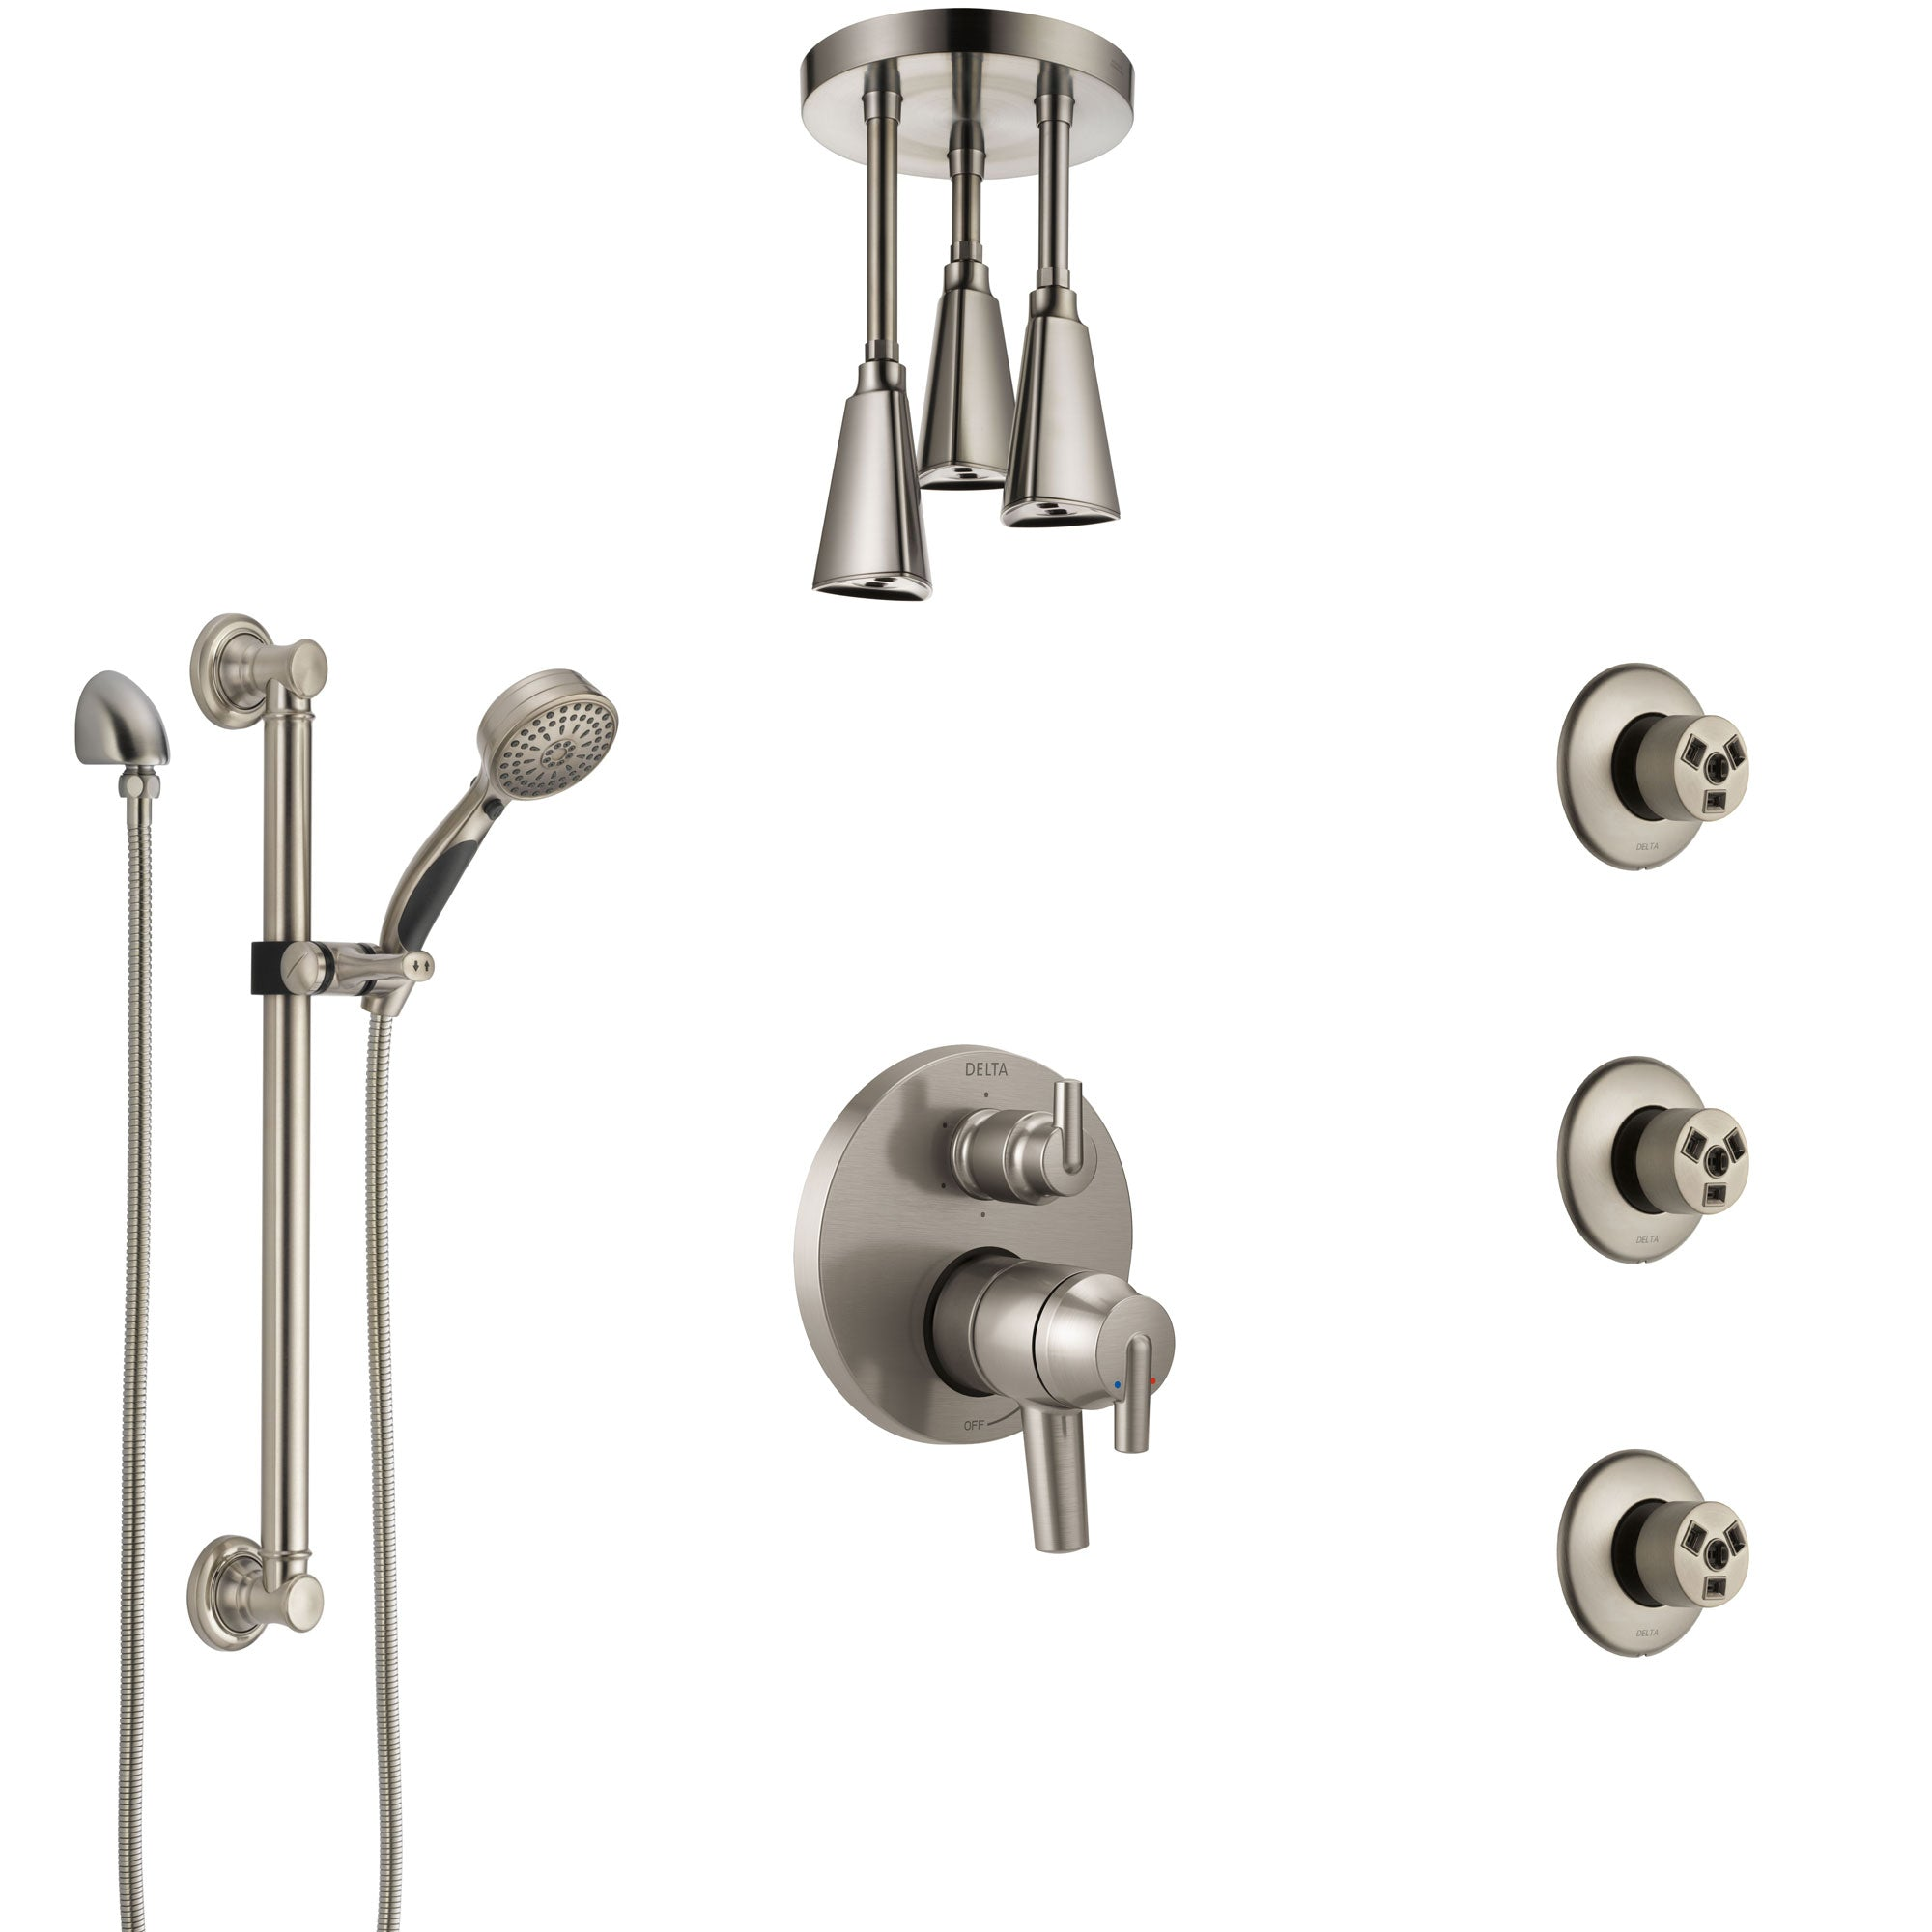 Delta Trinsic Dual Control Handle Stainless Steel Finish Shower System, Ceiling Showerhead, 3 Body Jets, Grab Bar Hand Spray SS27959SS3